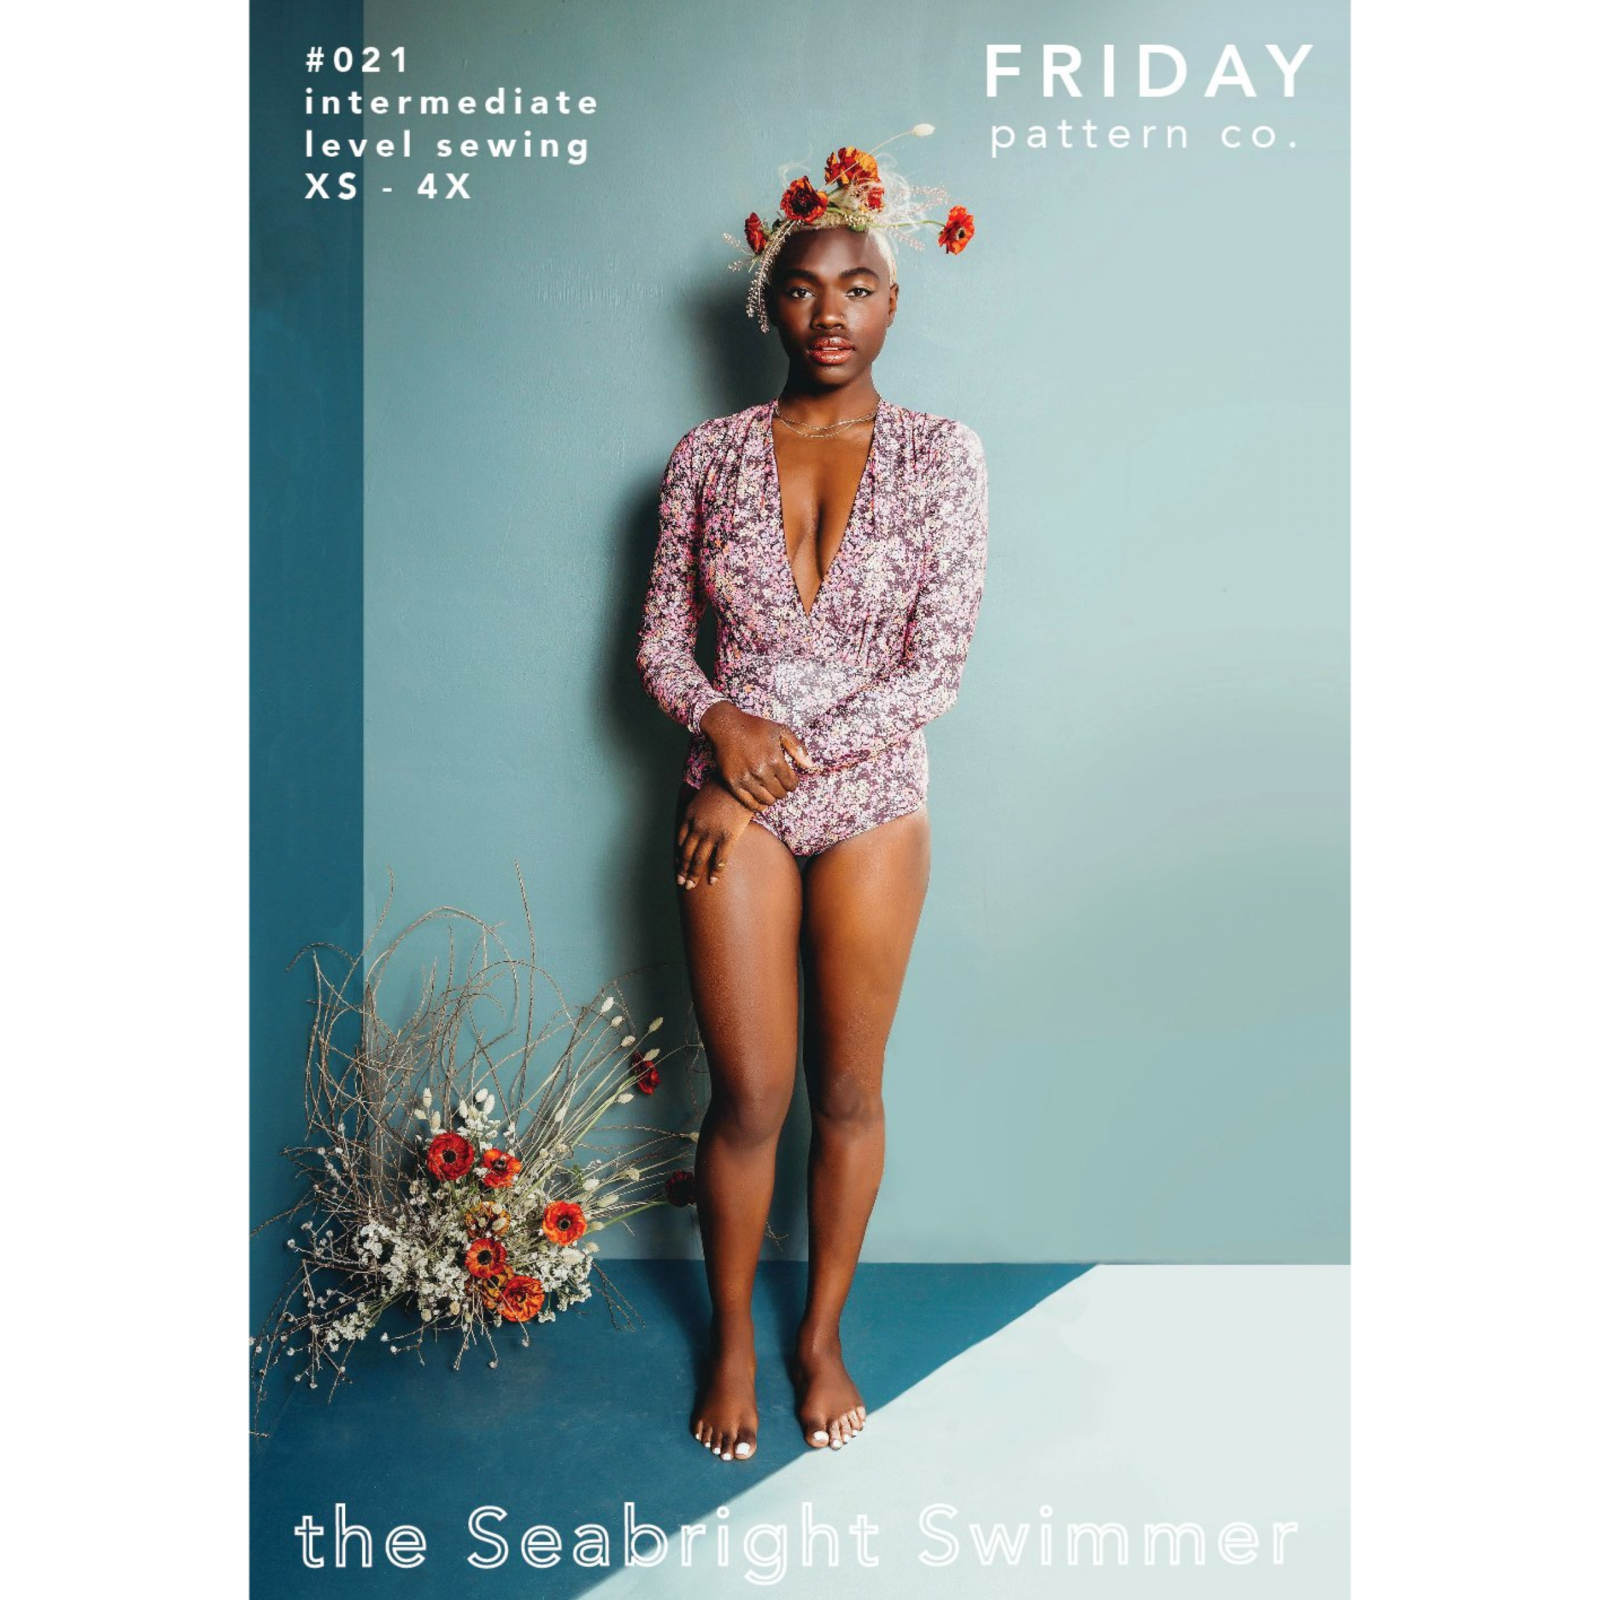 Friday Pattern Co Seabright Swimmer